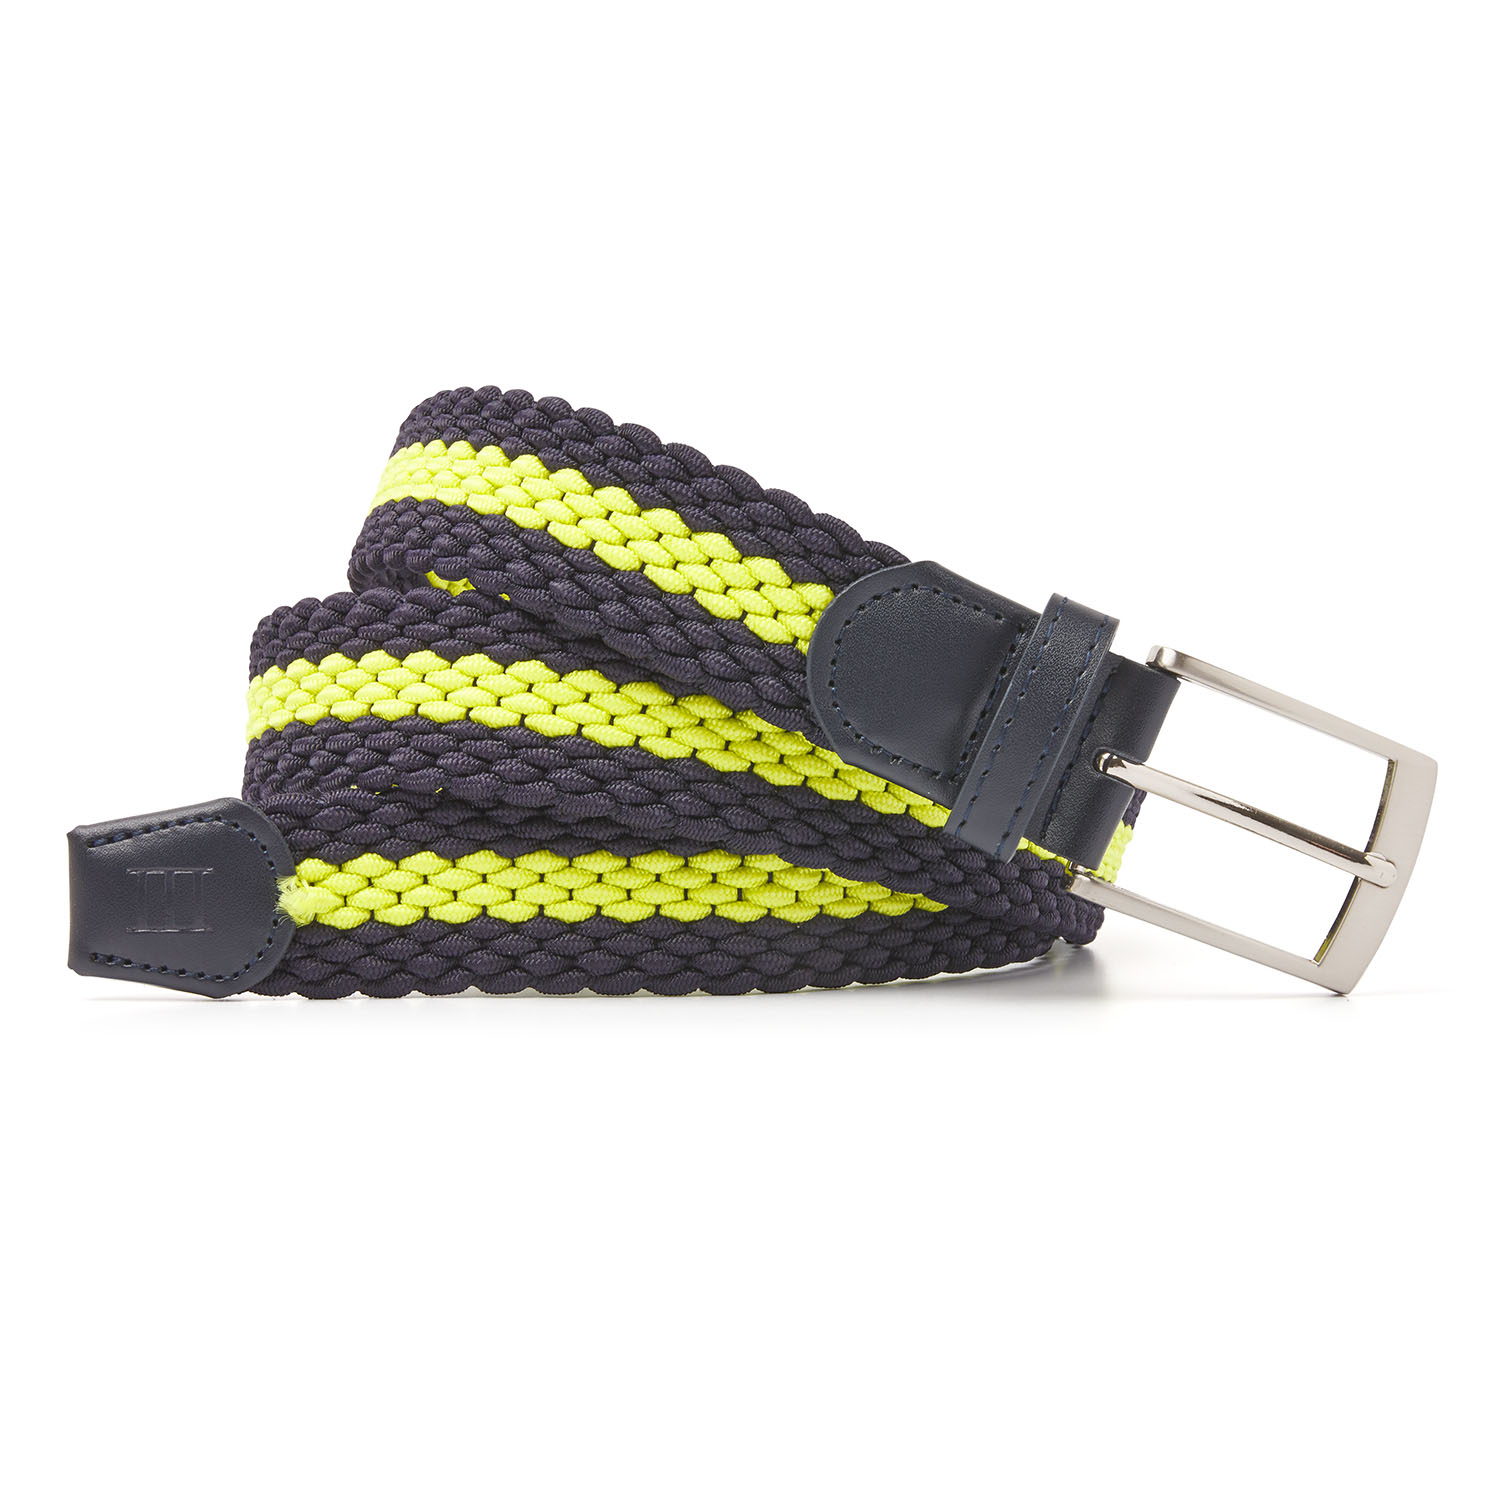 Mees | Braided belt navy/bright yellow